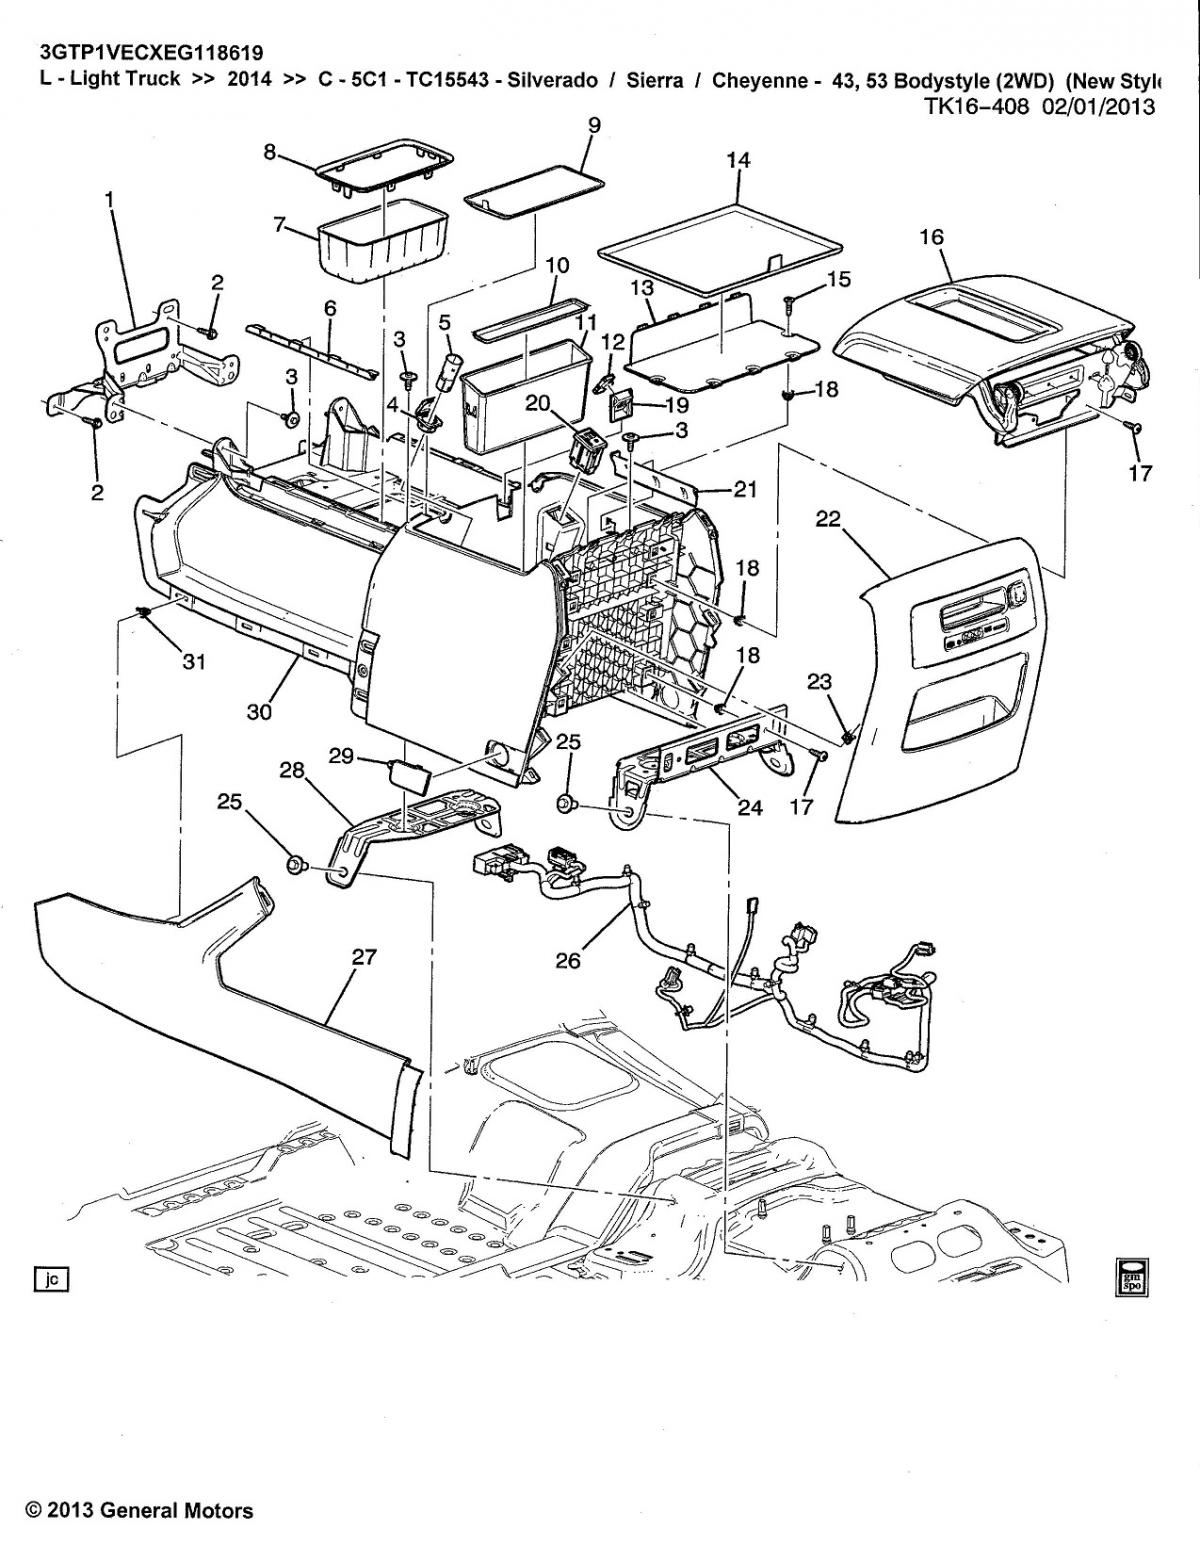 Bose Amp Assy Instructions